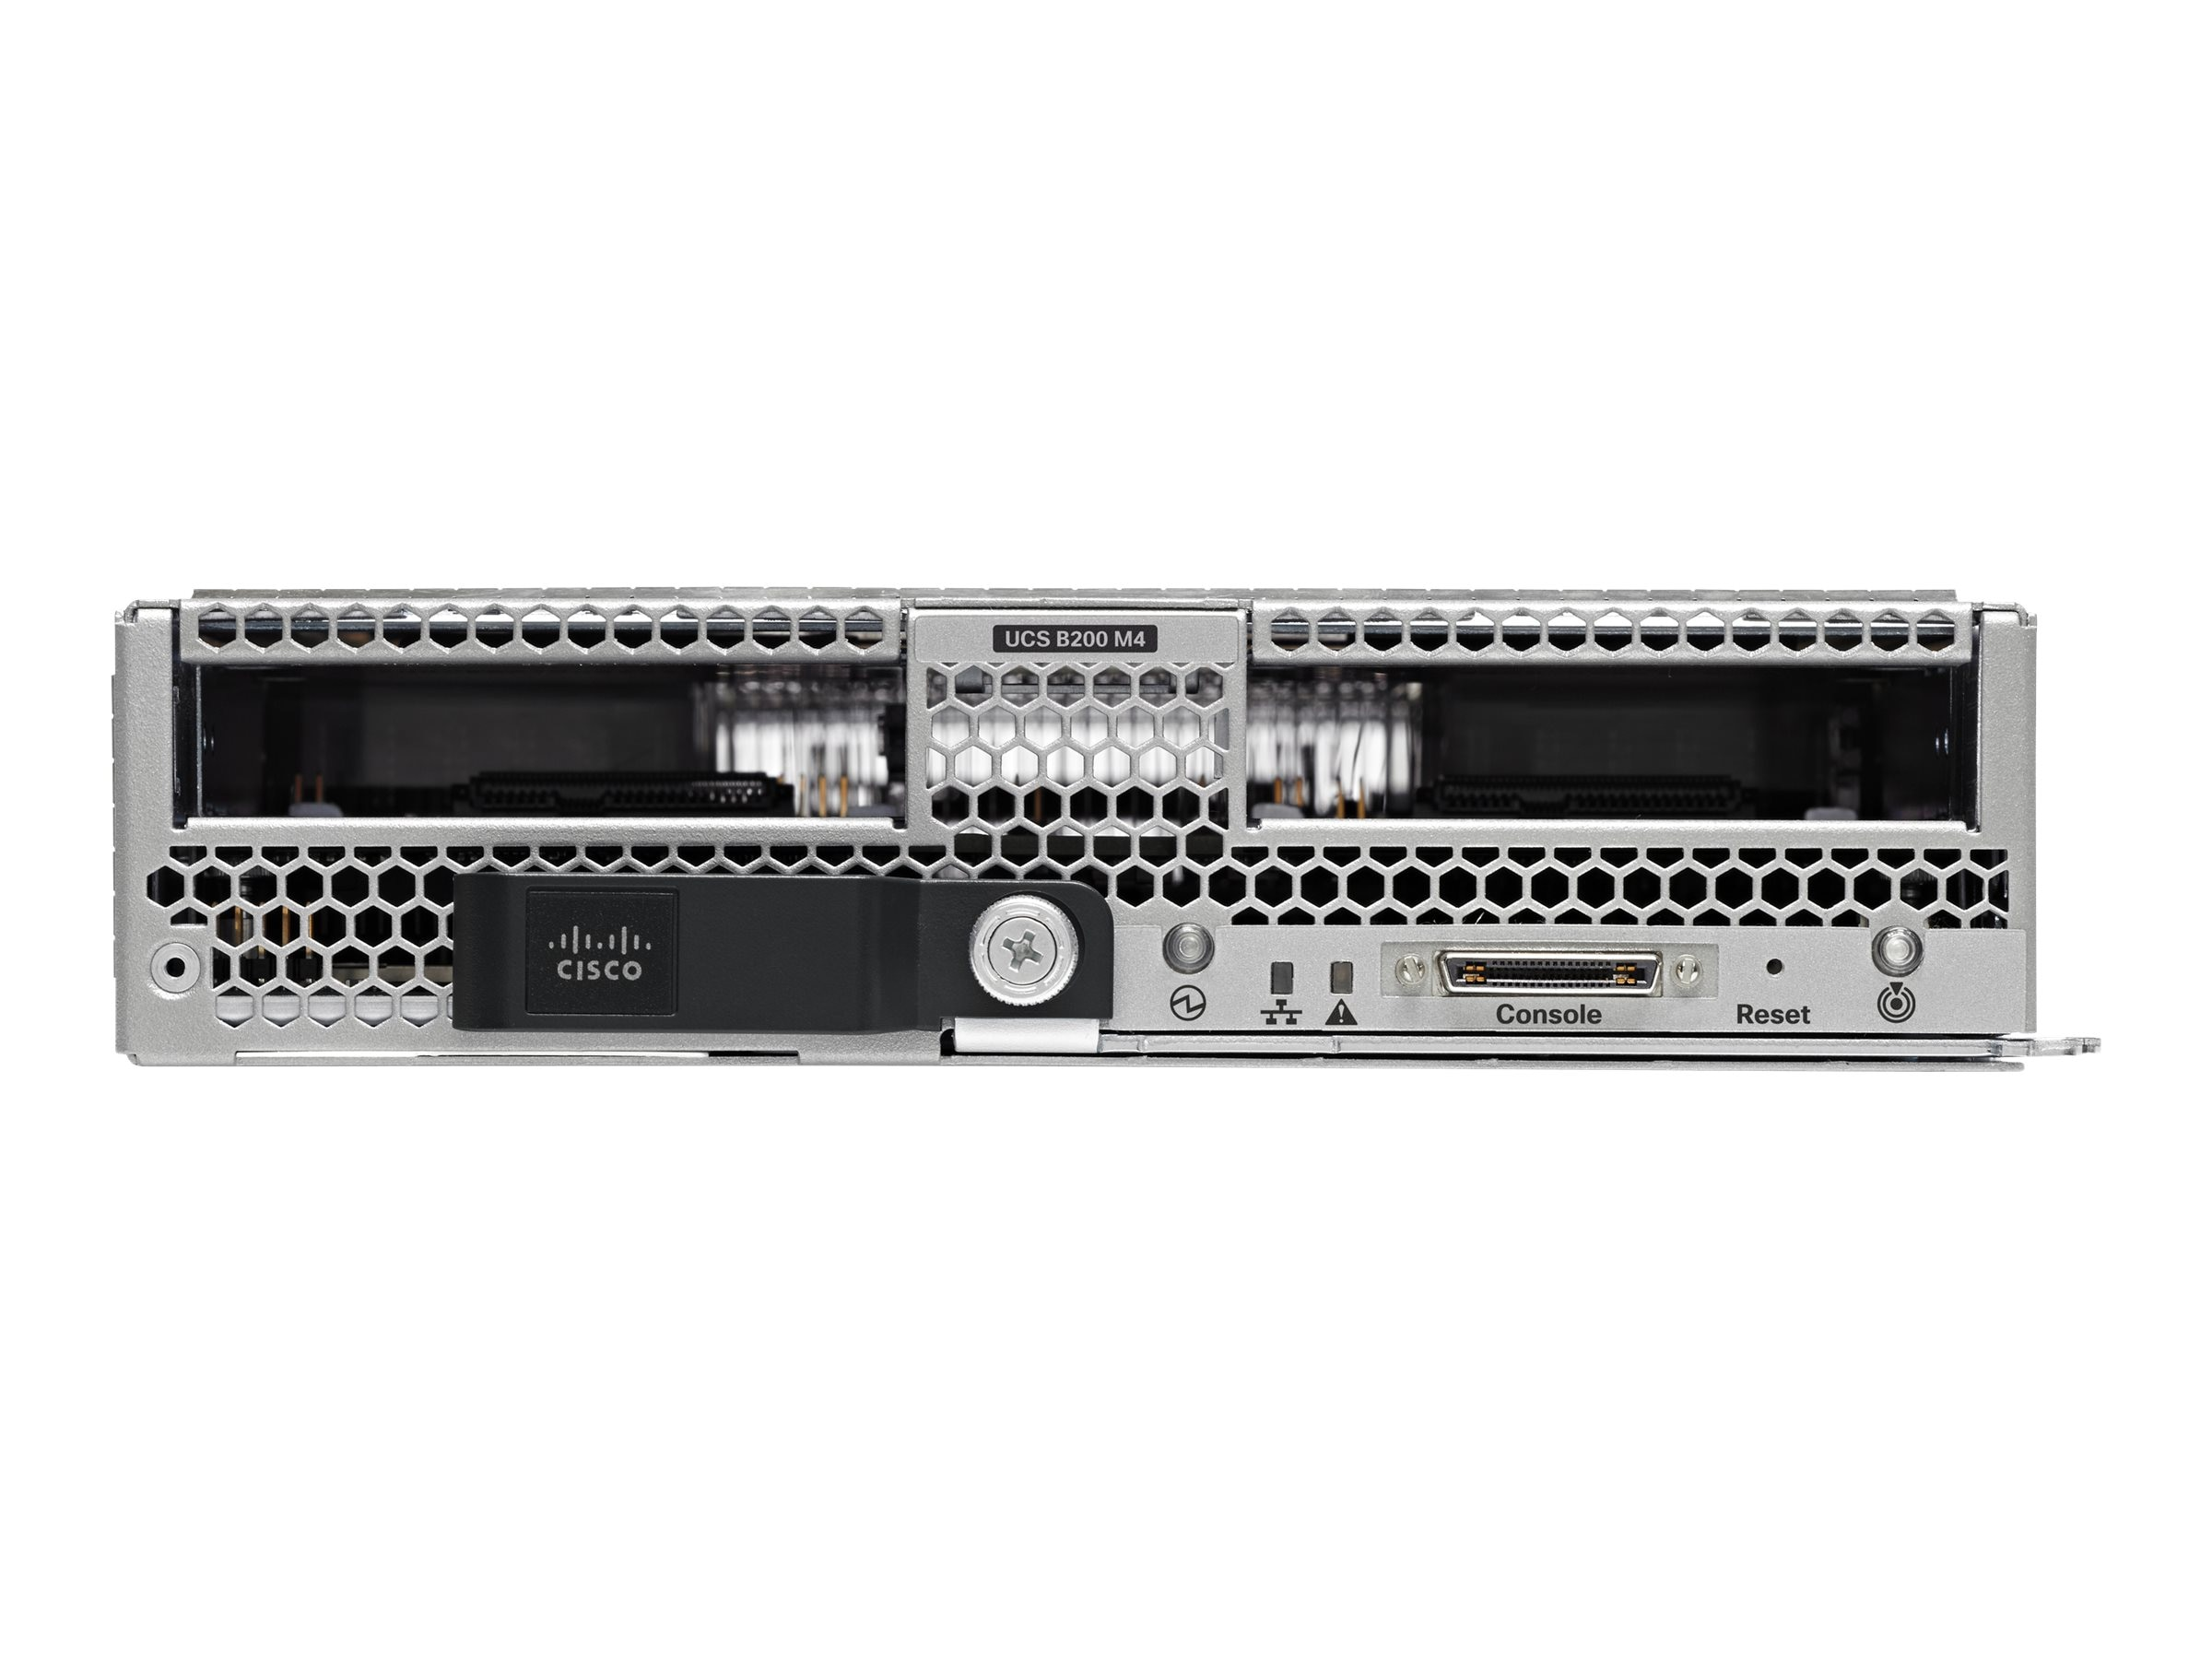 Cisco UCS SP Select B200 M4 Hi-Frequency 2 Blade (2x)Xeon E5-2637 v3 256GB VIC1340